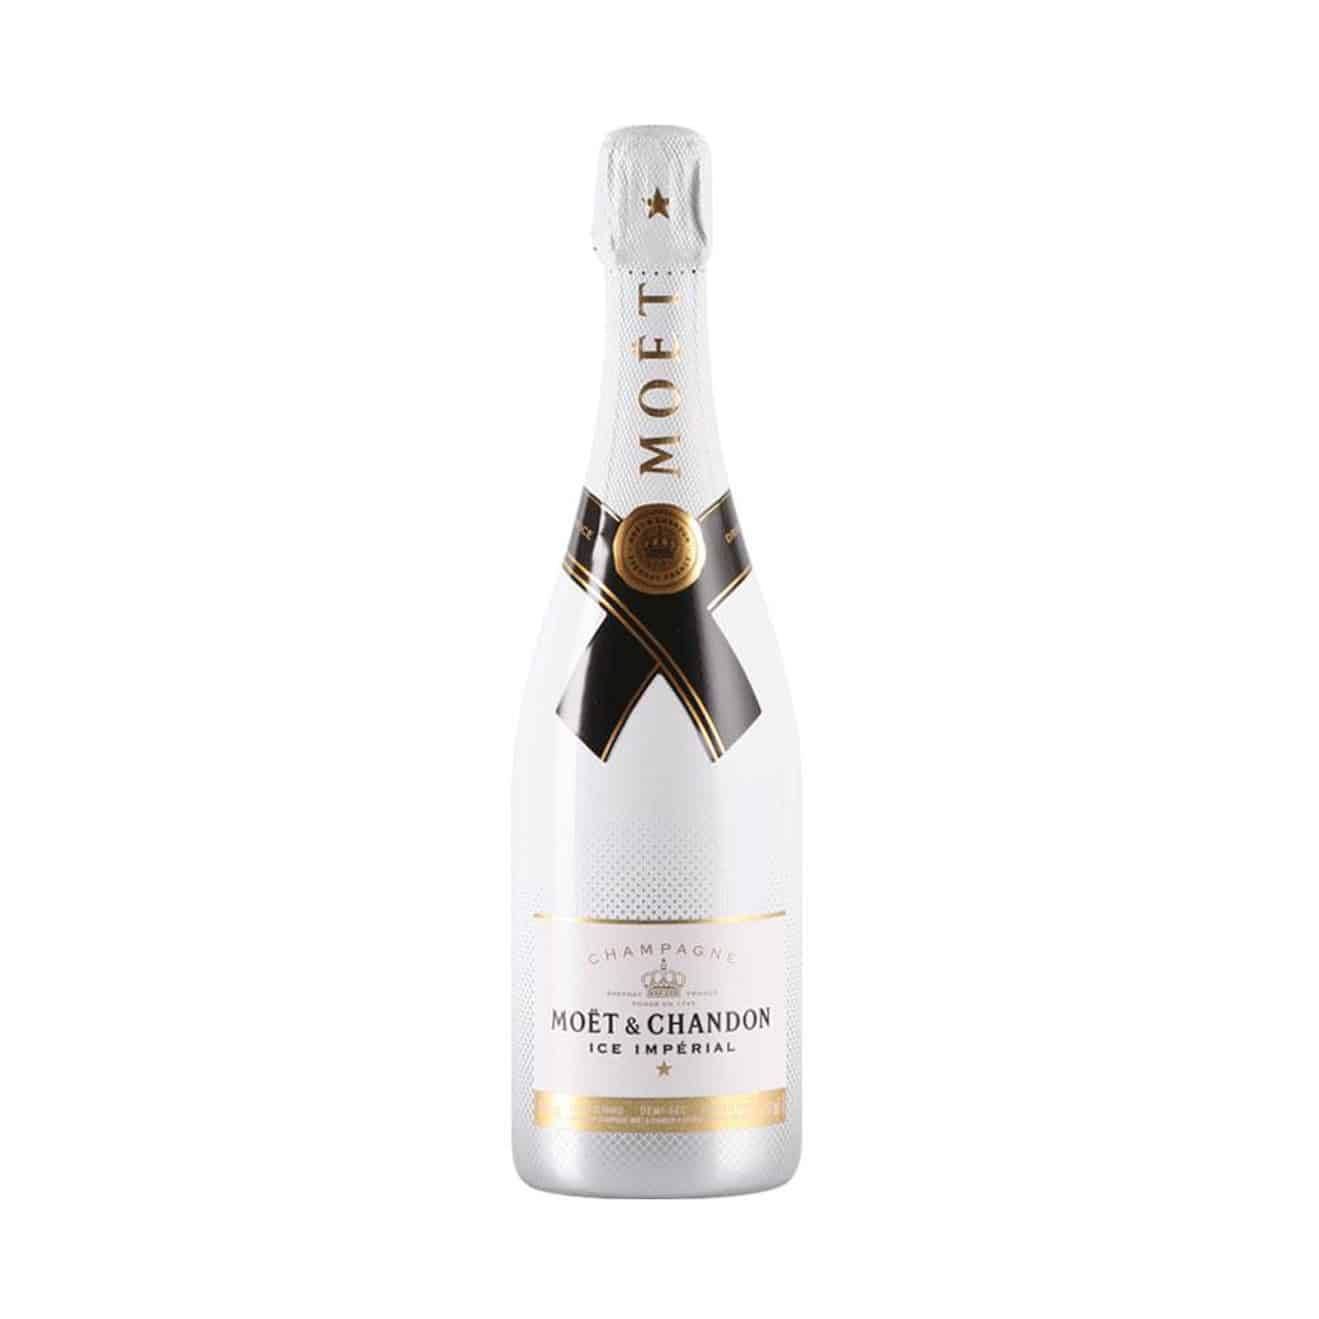 Moet & Chandon Ice Imperial 0,75l